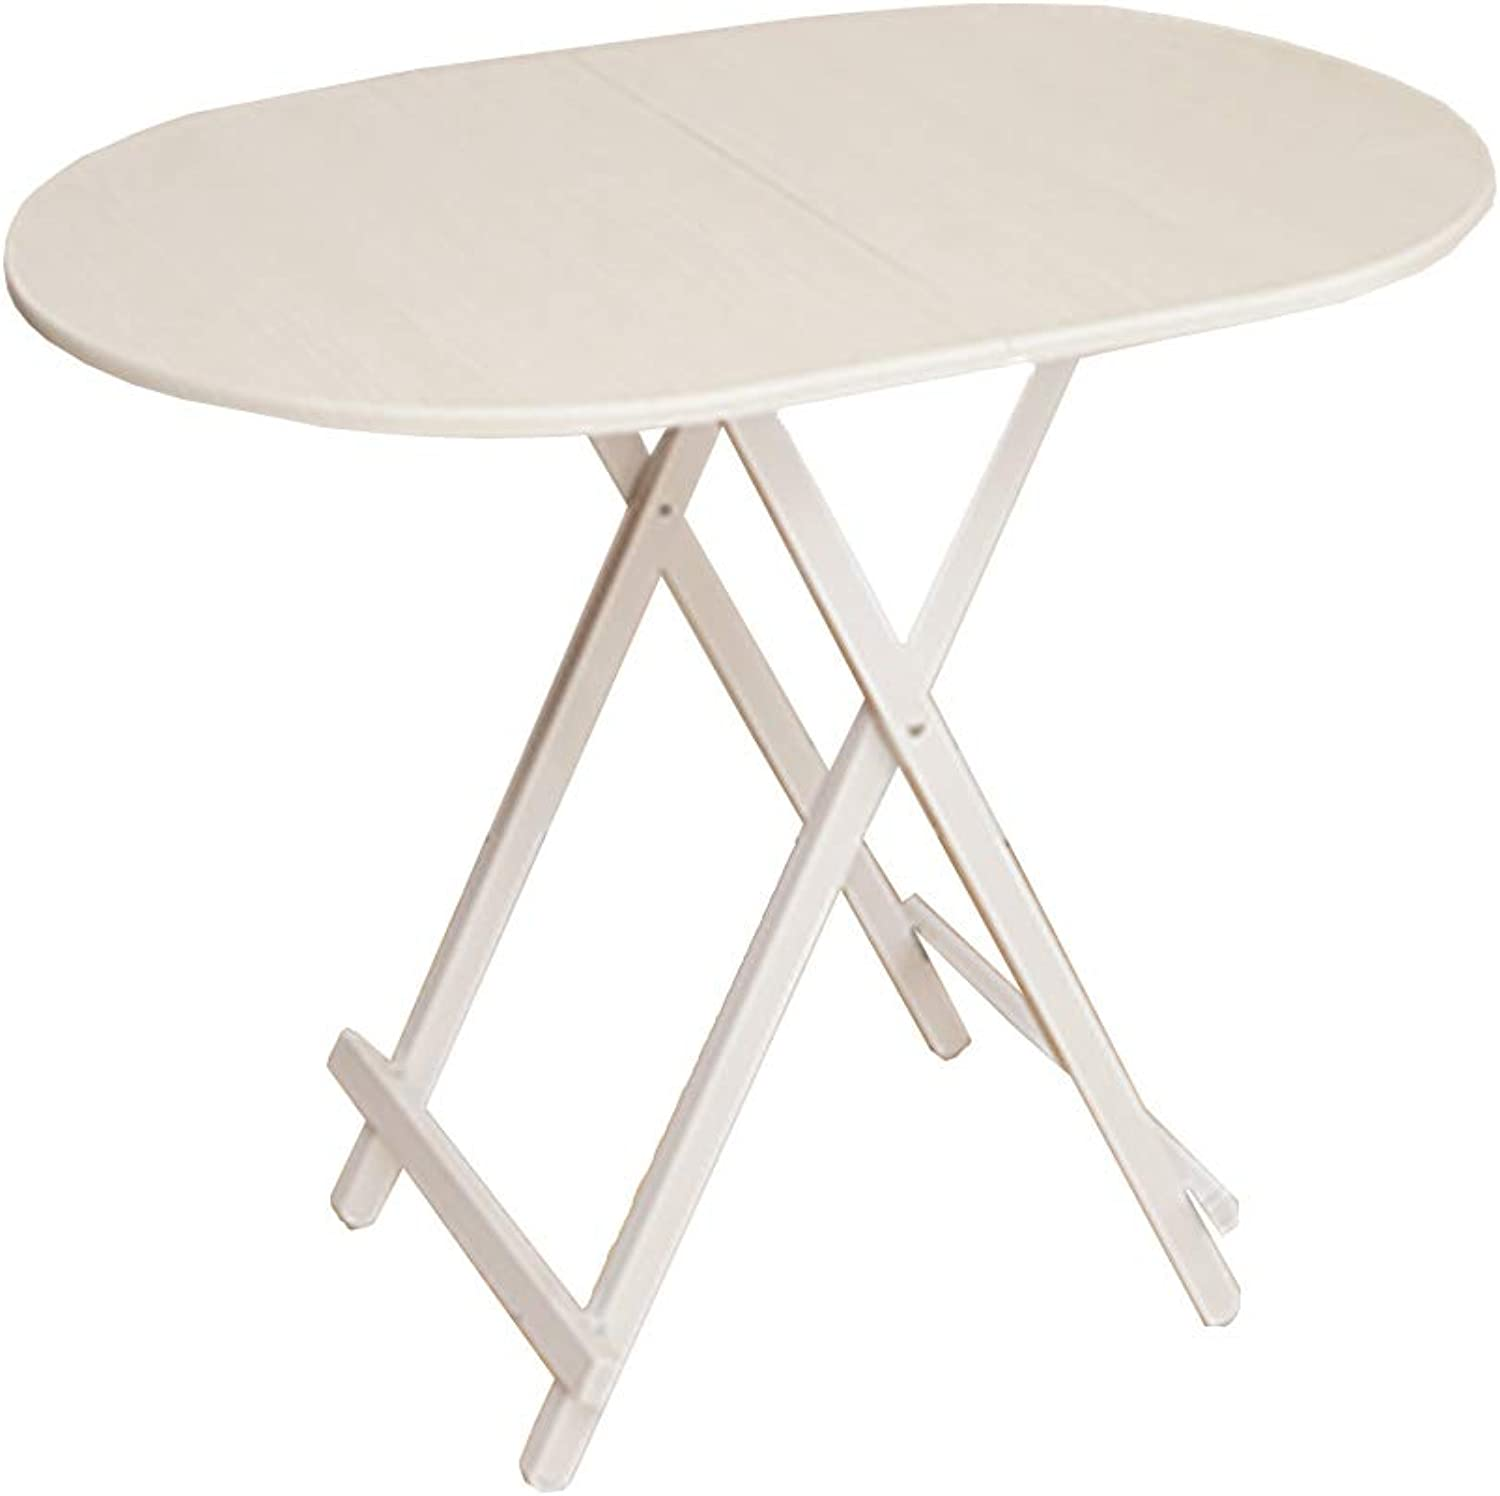 Folding Table Portable Picnic Table MDF Oval Table Multi-Function Computer Desk (color   White Wood Grain)